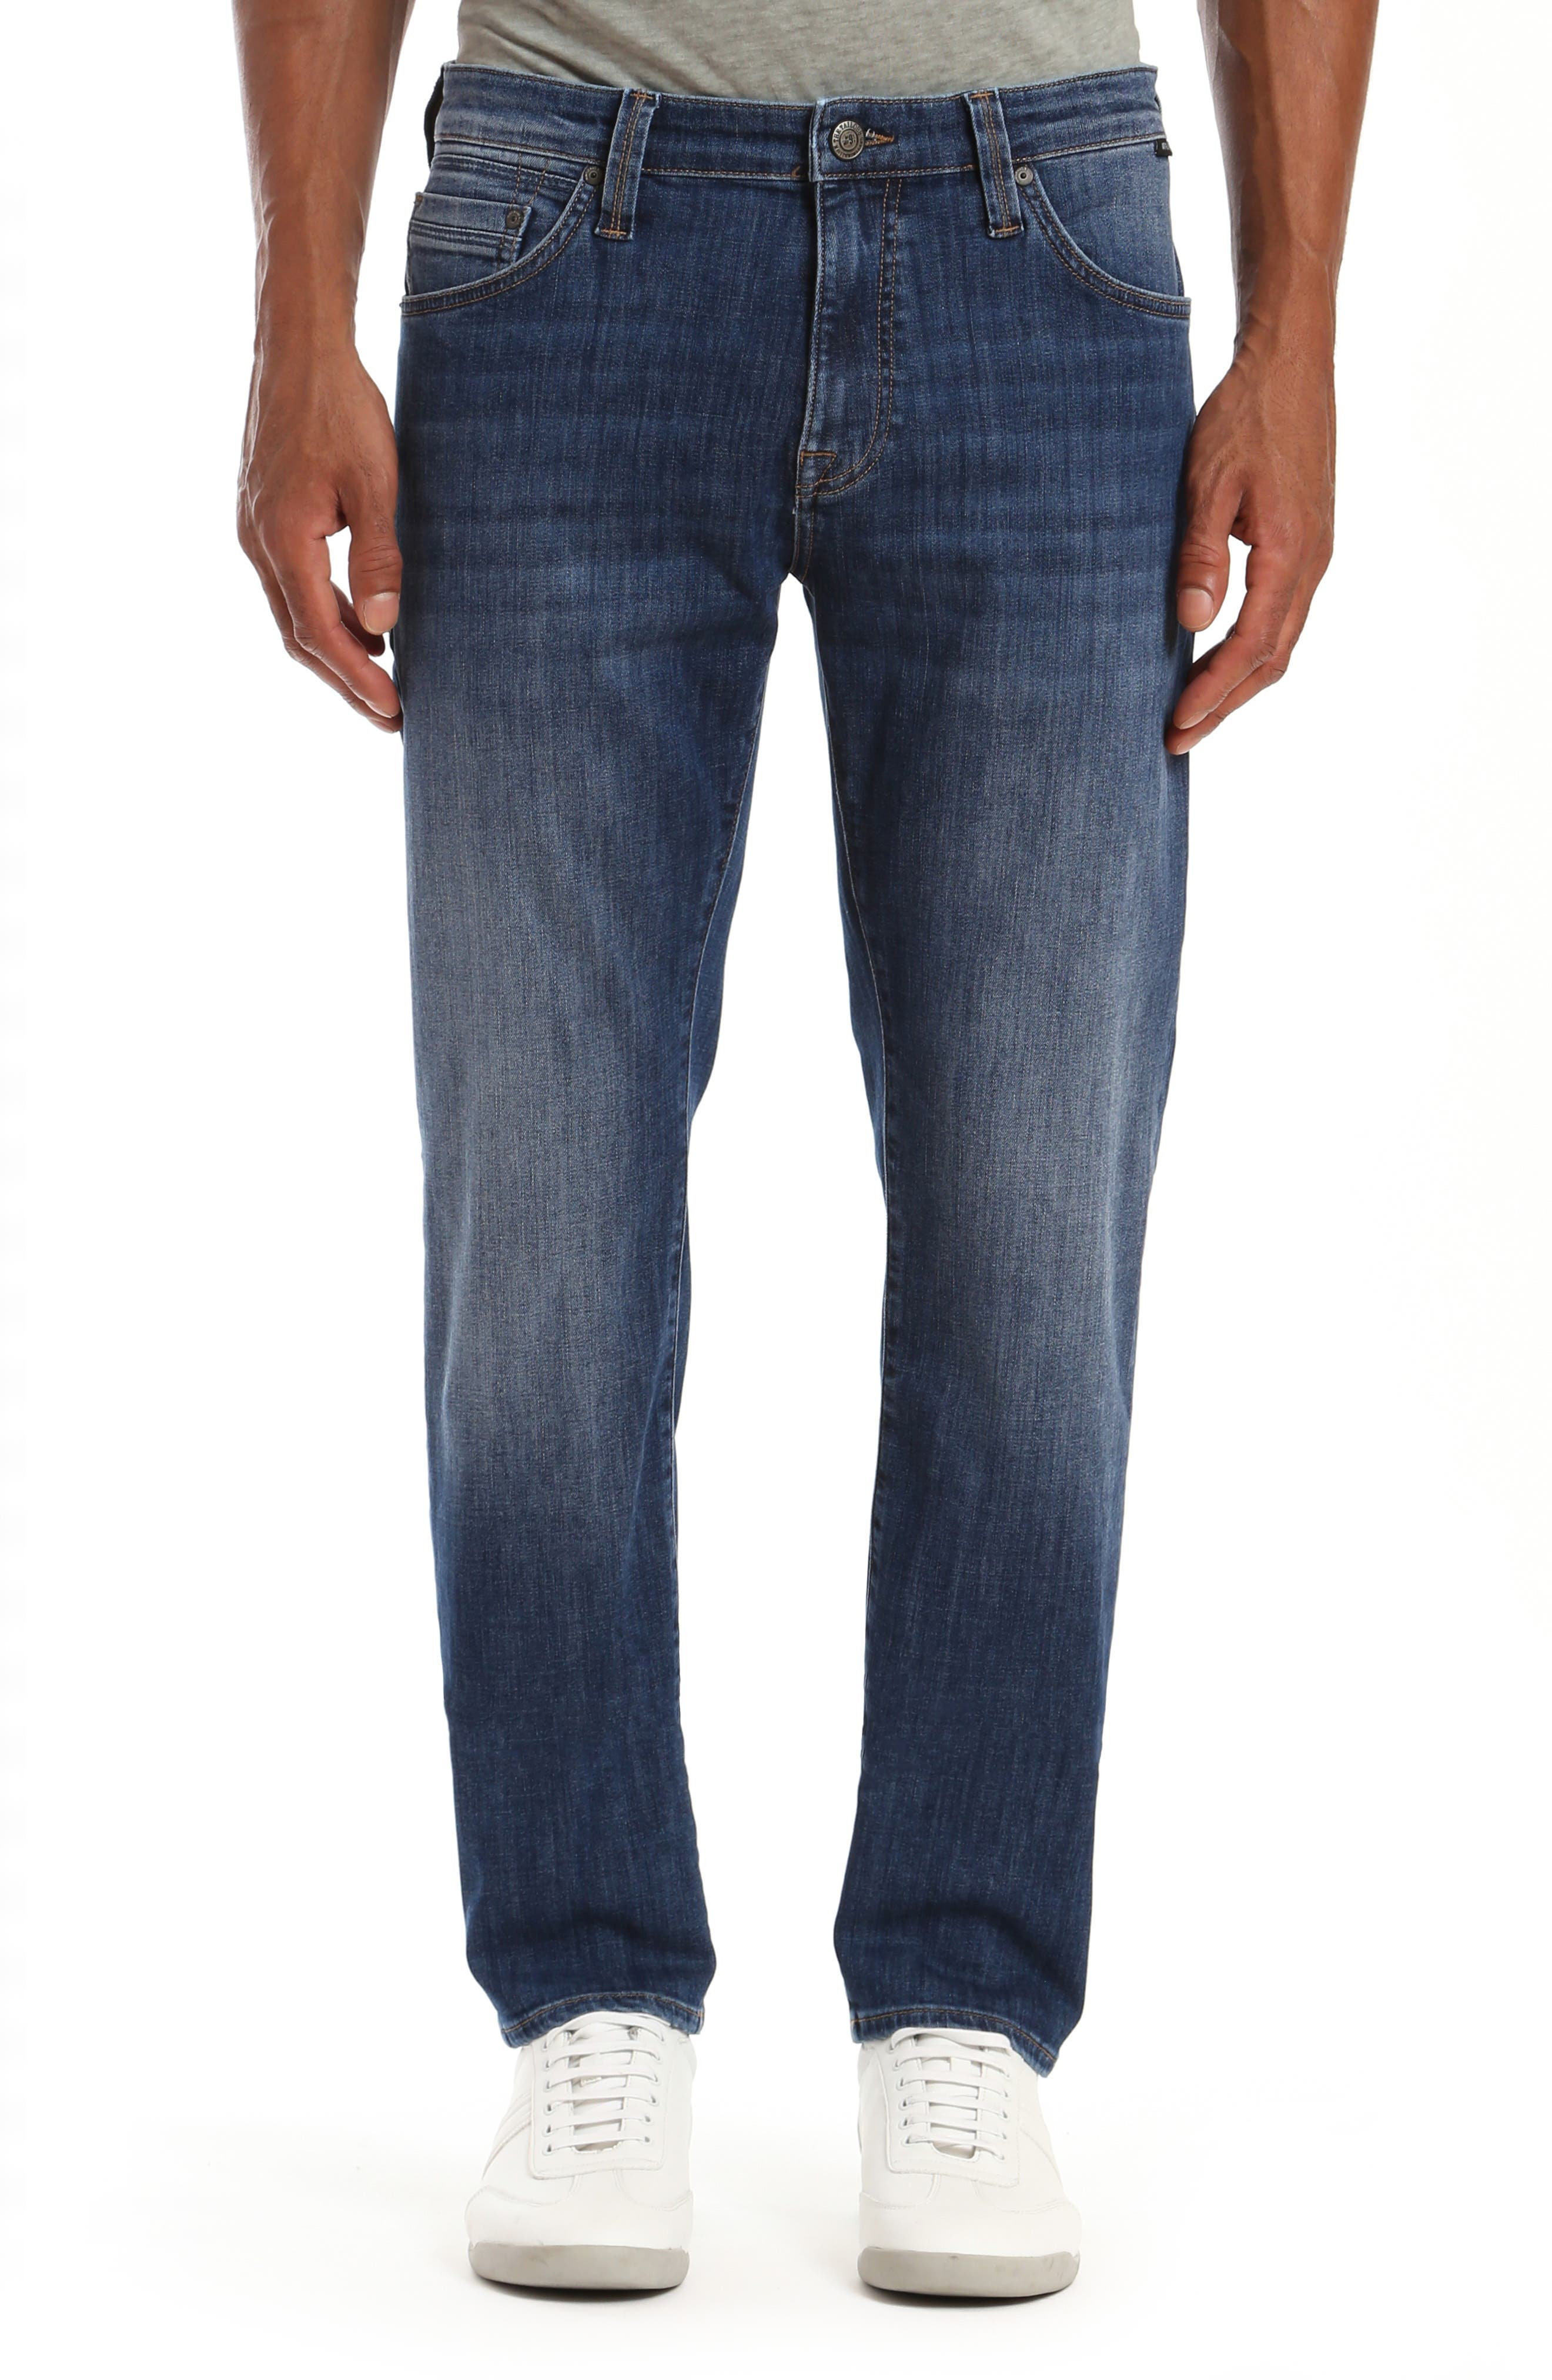 Fading and whiskering bring pre-worn character to slim-cut straight jeans with a vibe that keeps getting better and softer over time. Style Name: Mavi Jeans Marcus Slim Straight Leg Jeans (Deep Portland). Style Number: 6109165. Available in stores.